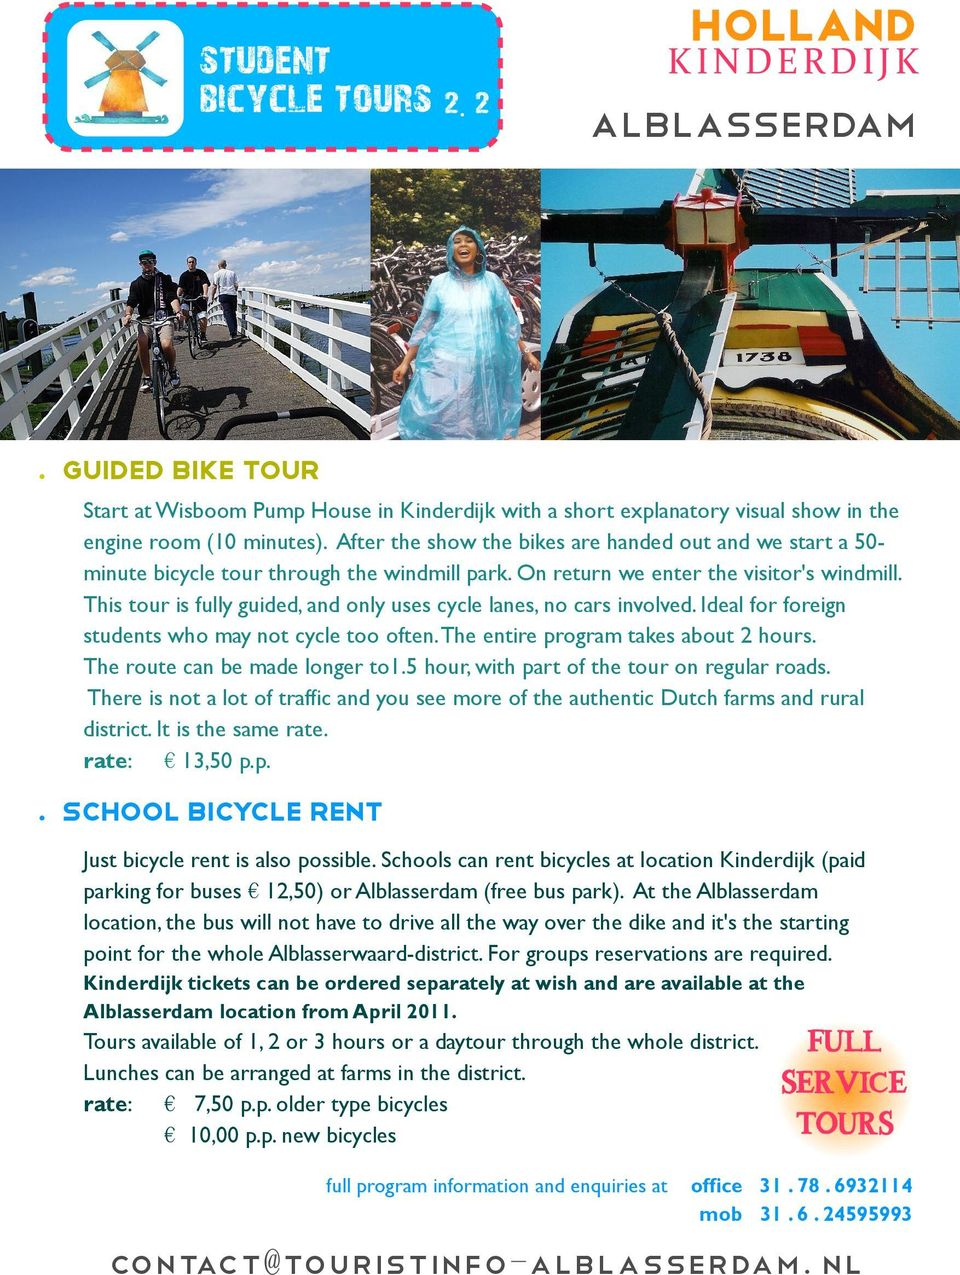 This tour is fully guided, and only uses cycle lanes, no cars involved. Ideal for foreign students who may not cycle too often. The entire program takes about 2 hours.